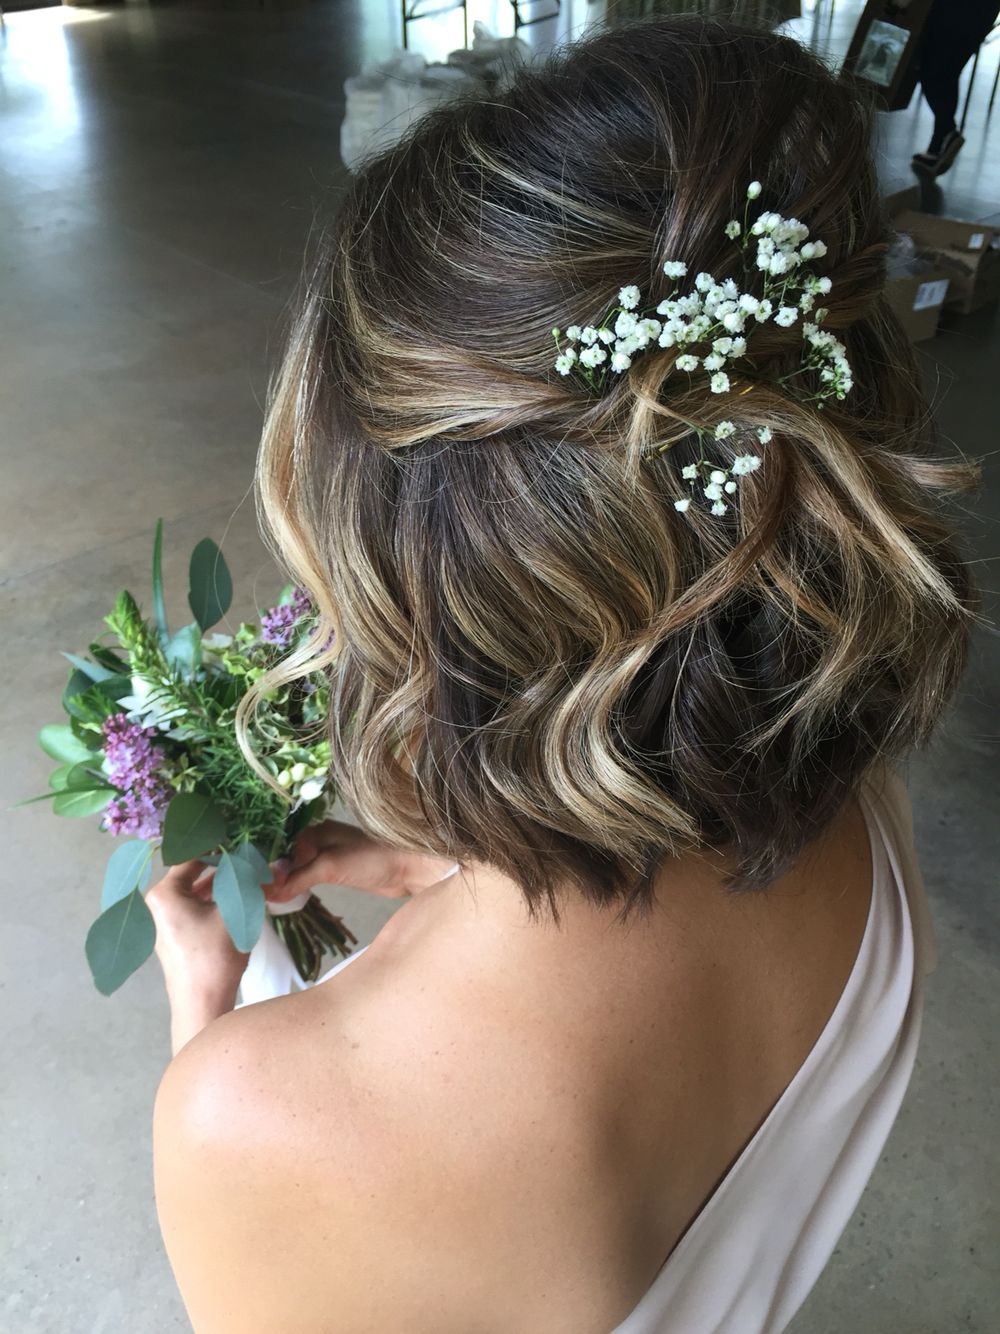 Wedding Hairstyles For Short Hair 1 - Haircuts + Hairstyles 2018